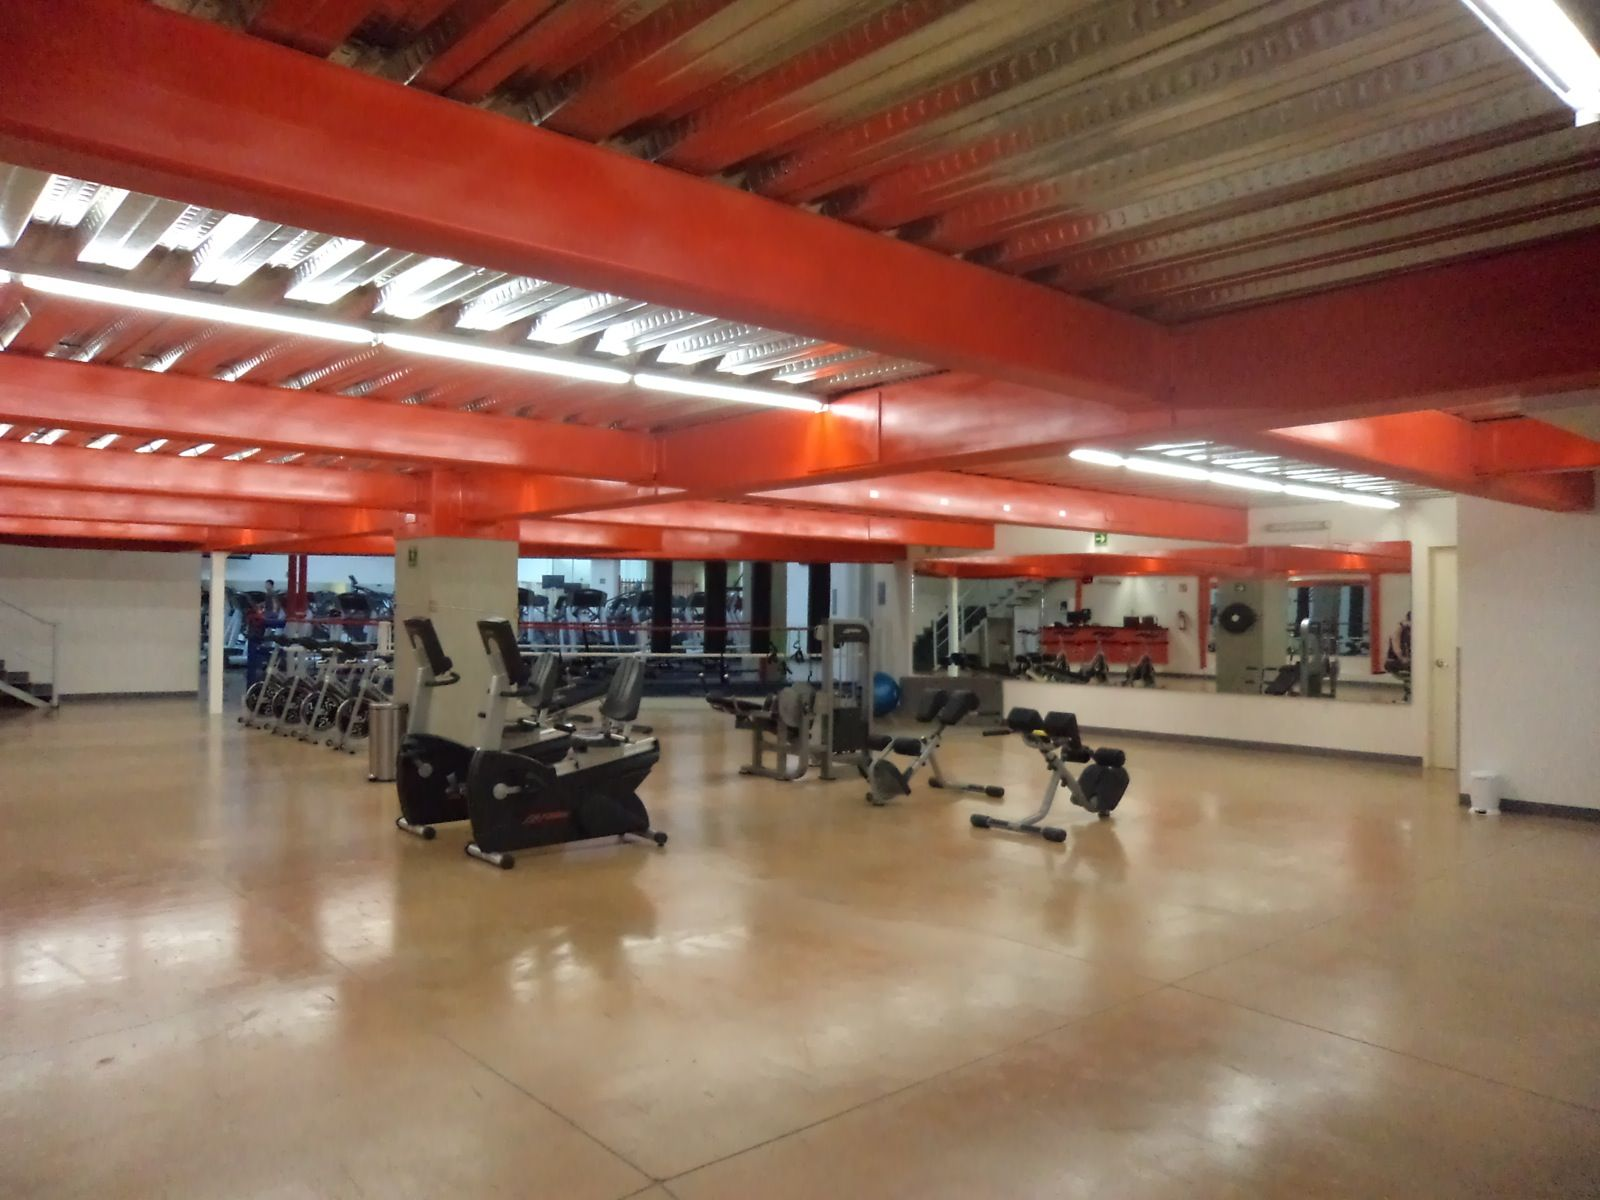 Fitness center with images fitness center fitness